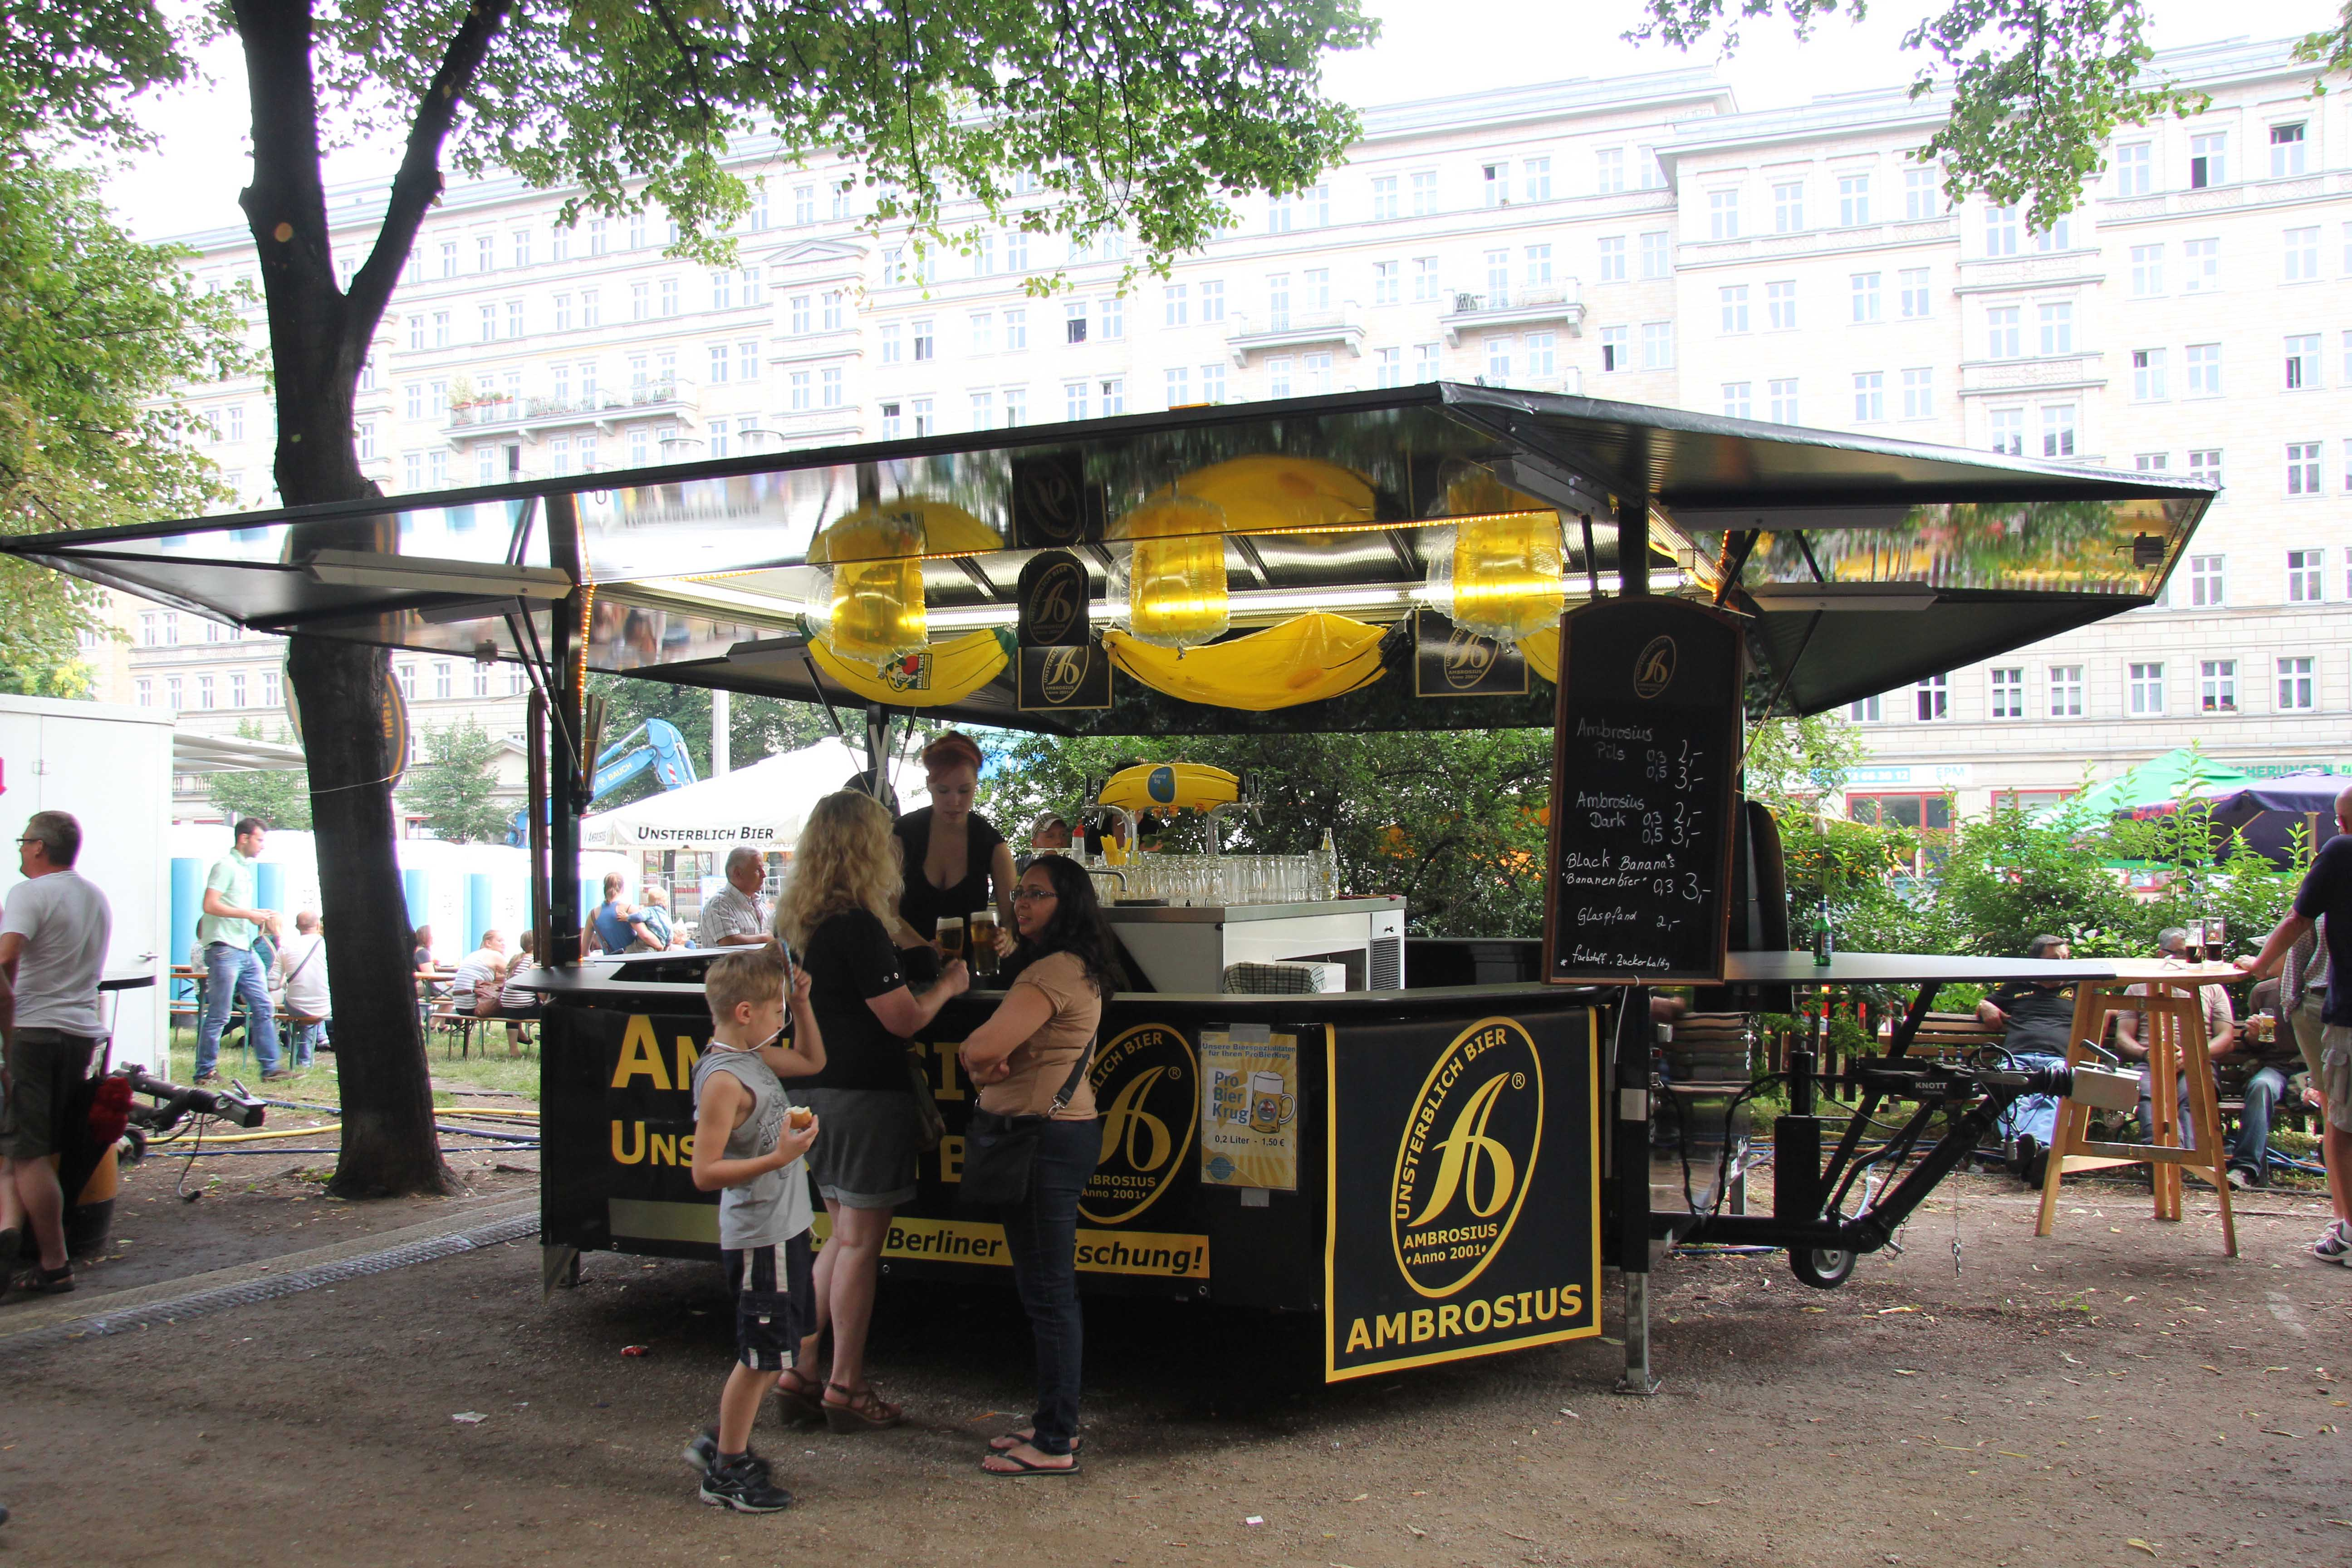 A Banana Beer stall at the International Berlin Beer Festival (Internationales Berliner Bierfestival)